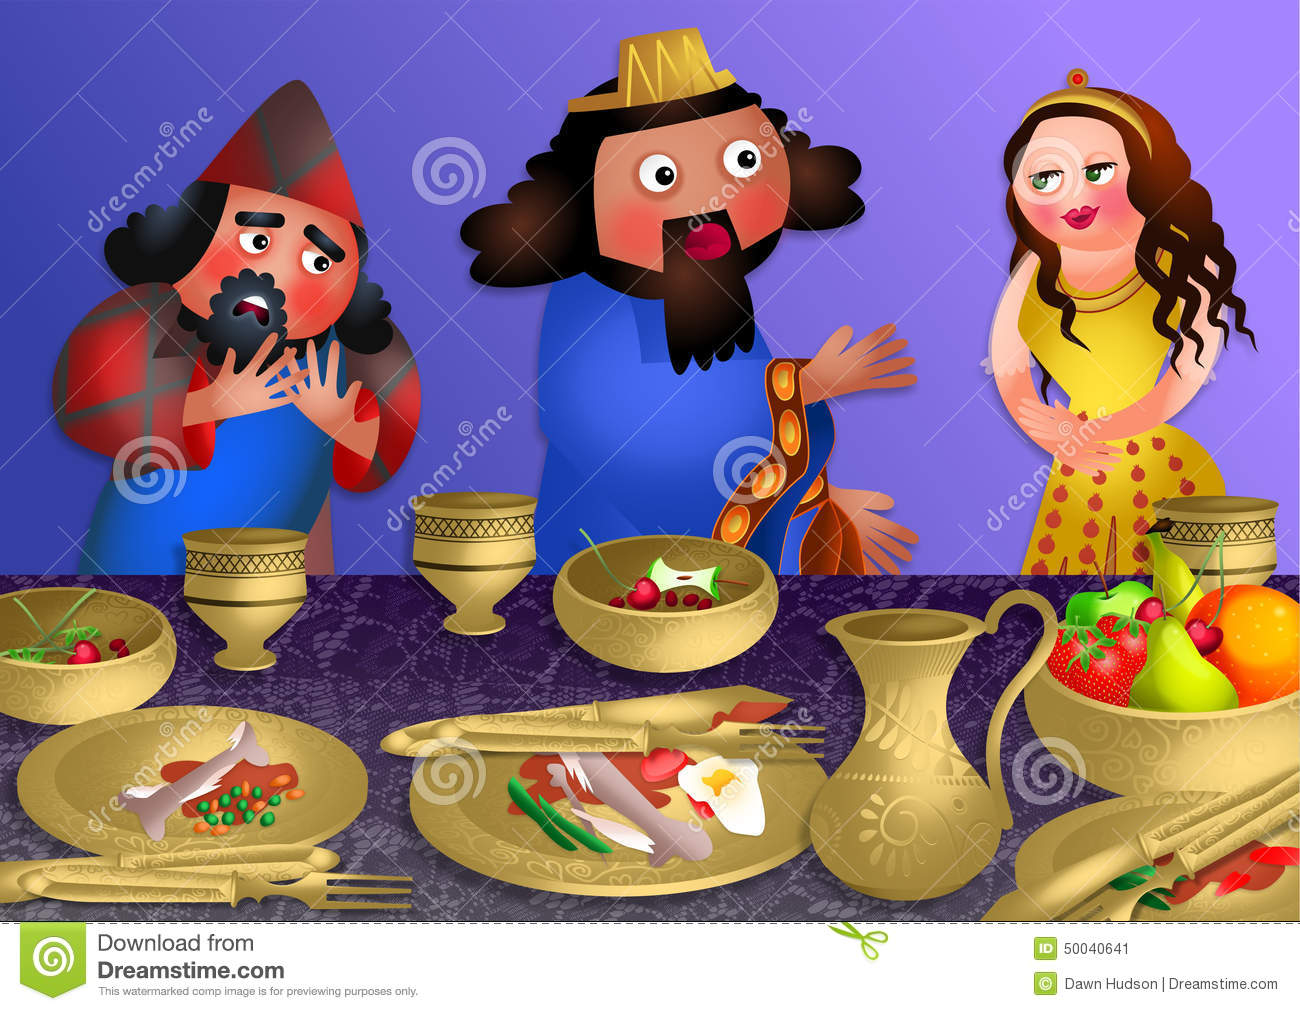 Esthers Banquet - Feast Of Purim Stock Illustration - Image: 50040641